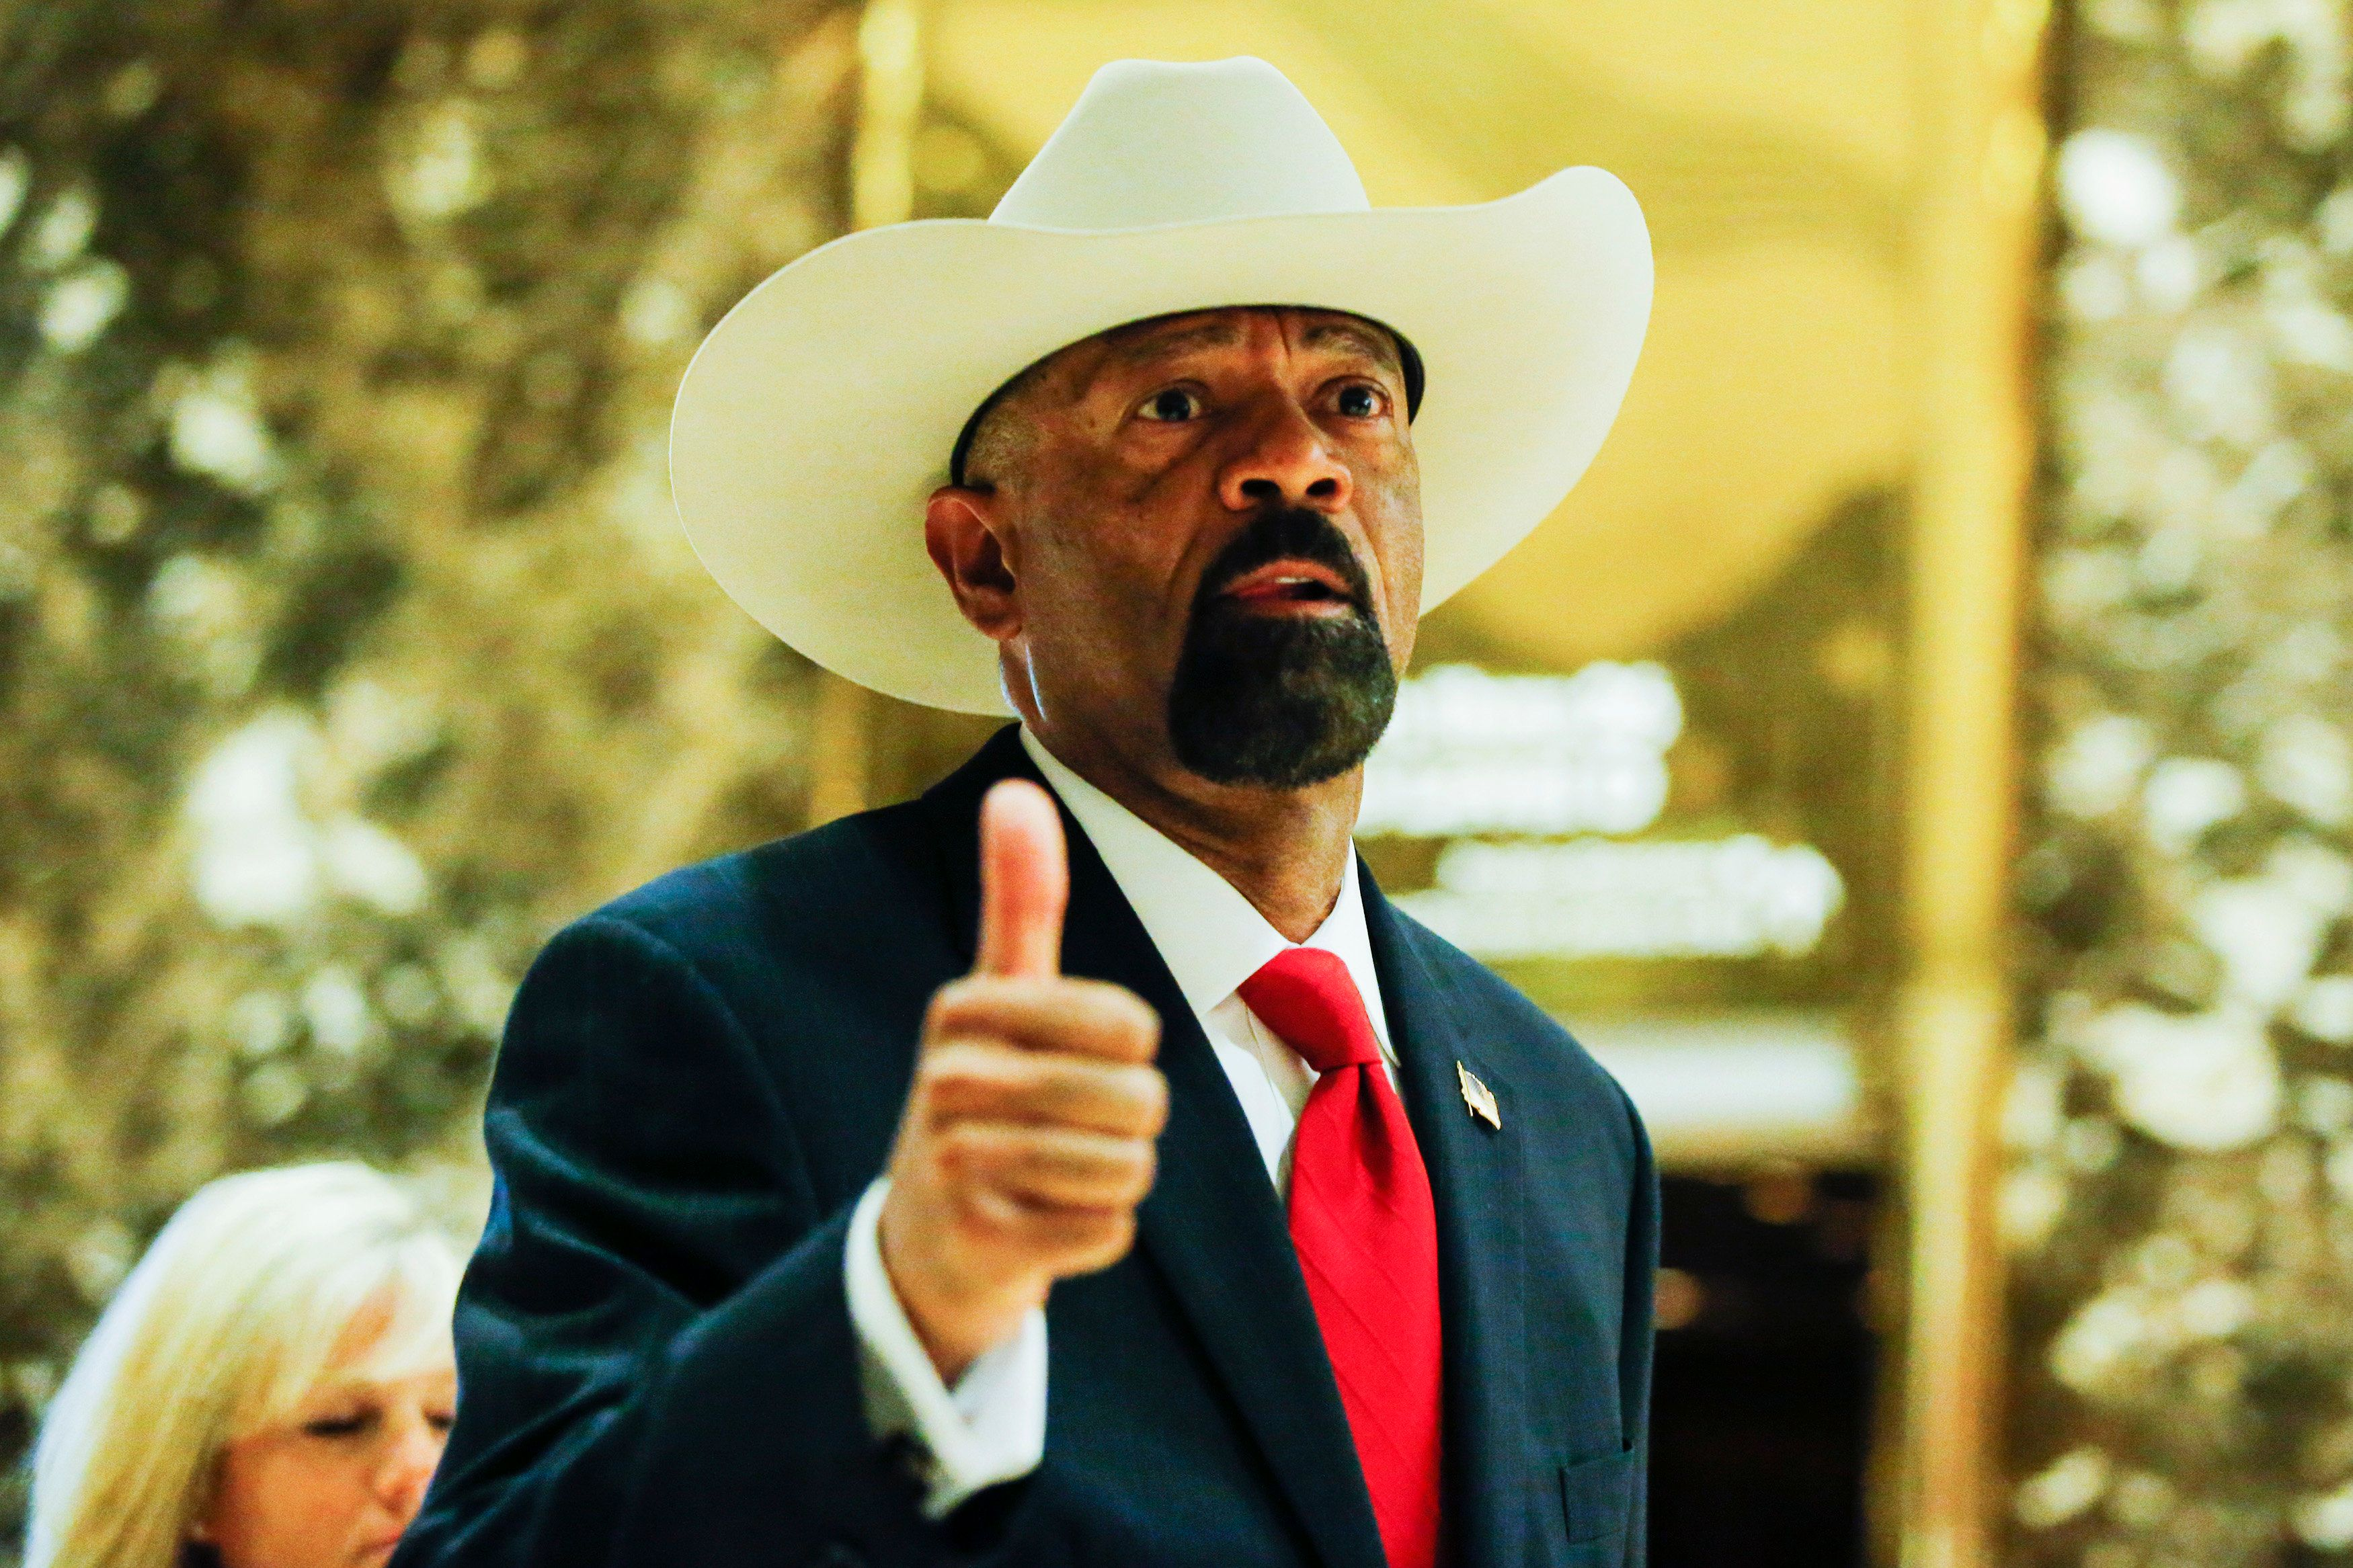 Milwaukee Sheriff David Clarke (L) exits elevators after meetings with President-elect Donald Trump November 28, 2016 at the Trump Tower in New York / AFP / Eduardo Munoz Alvarez        (Photo credit should read EDUARDO MUNOZ ALVAREZ/AFP/Getty Images)